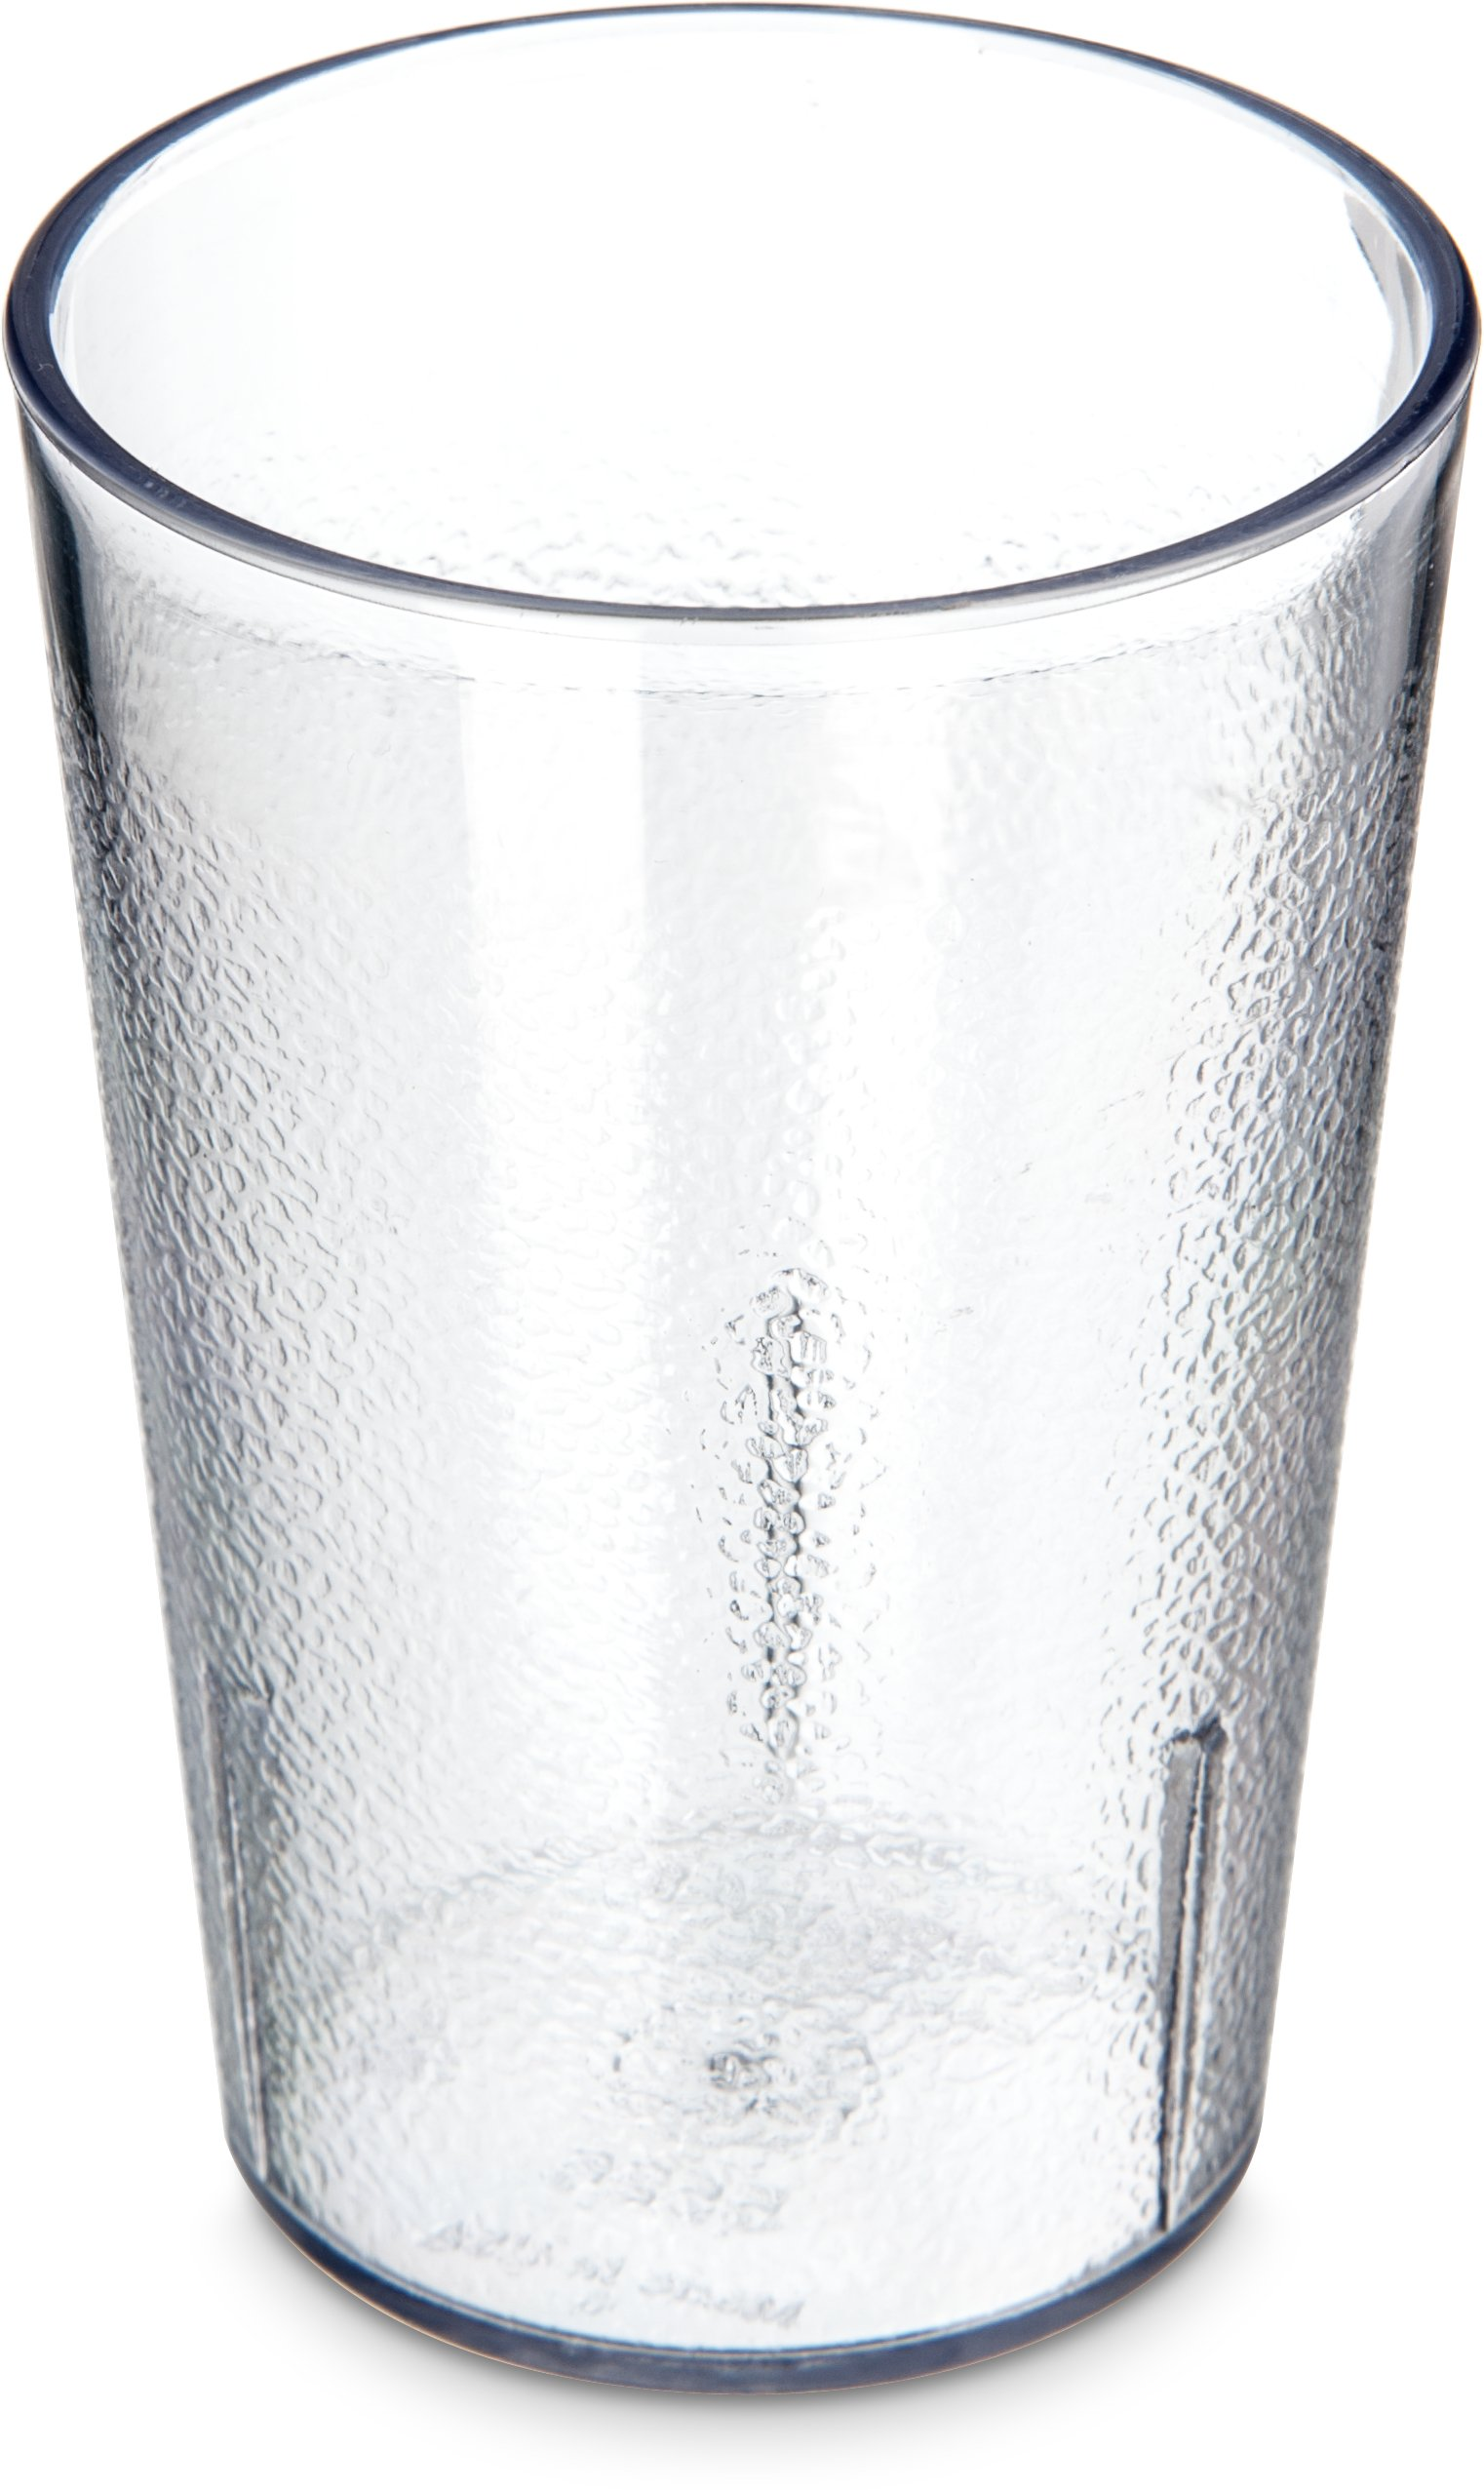 Carlisle 552607 Stackable Shatter-Resistant Plastic Tumbler, 8 oz., Clear (Pack of 72)